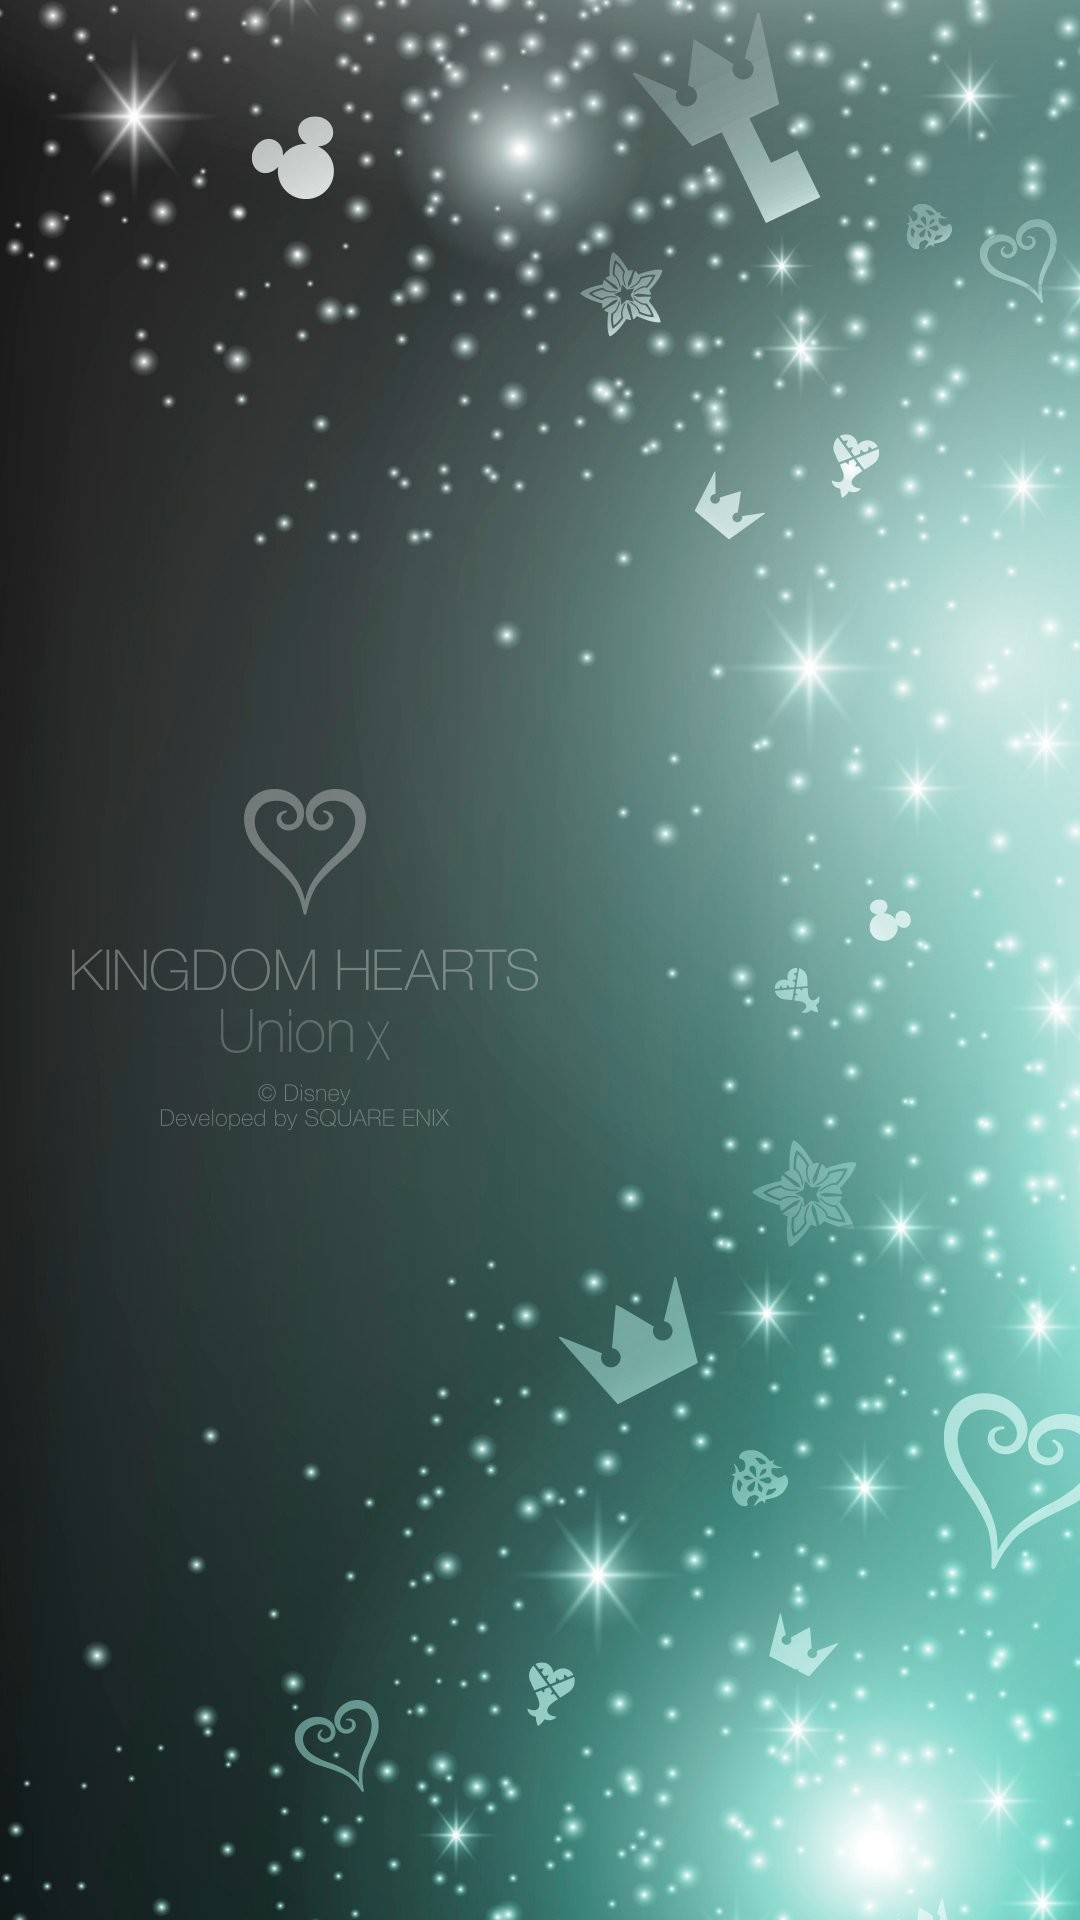 Res: 1080x1920, Kingdom Hearts Union X Wallpapers. Android. iPhone